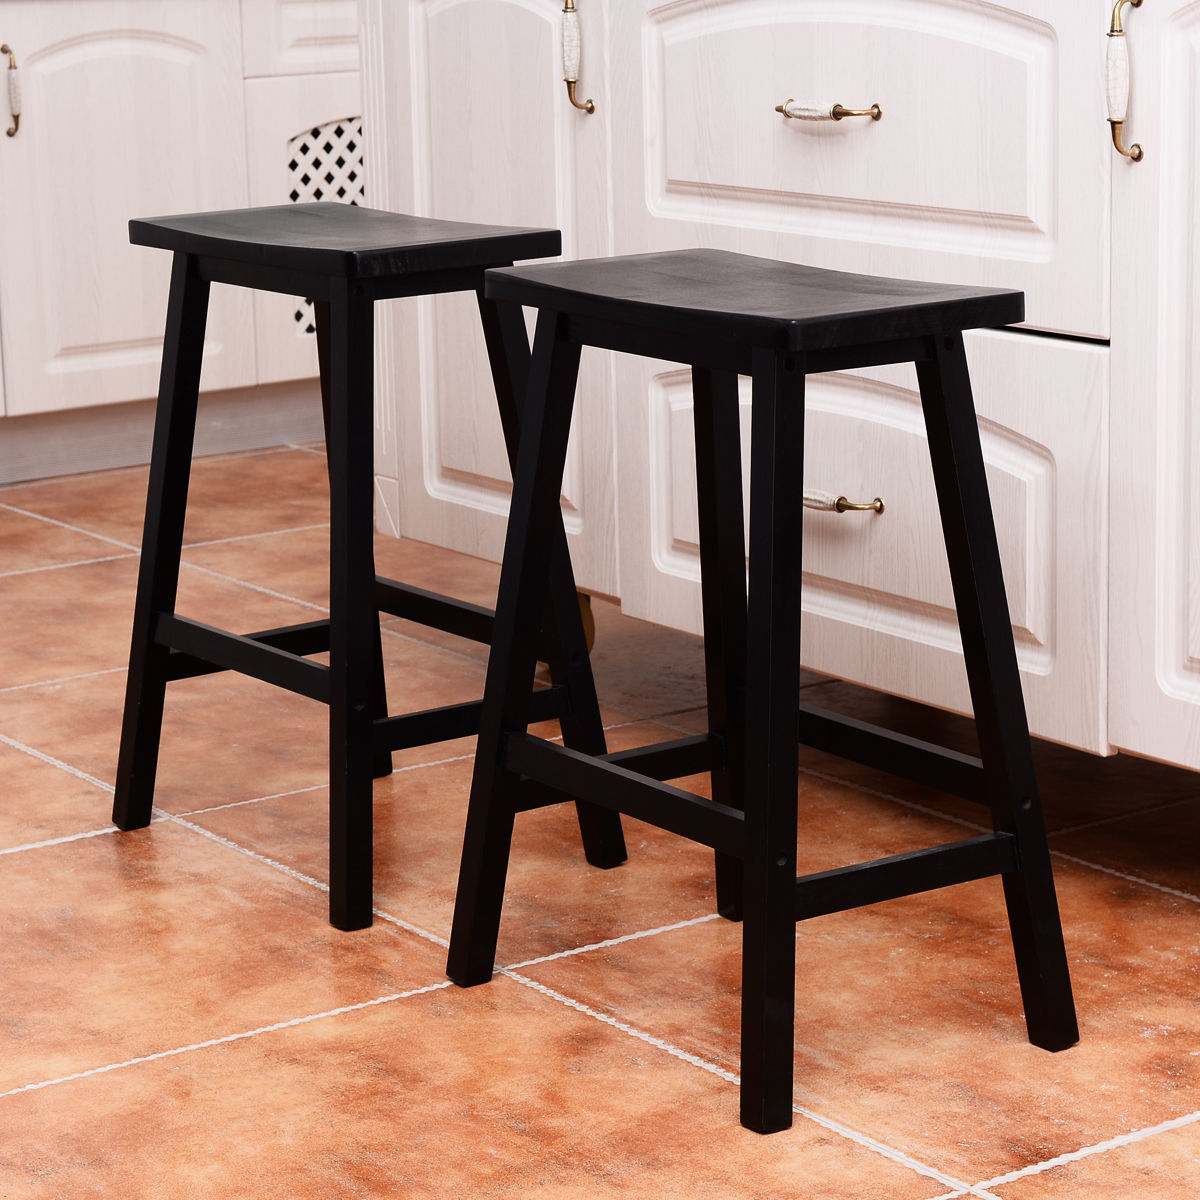 Sensational Details About Set Of 2 Bar Stools Kitchen Dining Room Saddle Seat Wooden Pub Chair 24 Inch Gamerscity Chair Design For Home Gamerscityorg